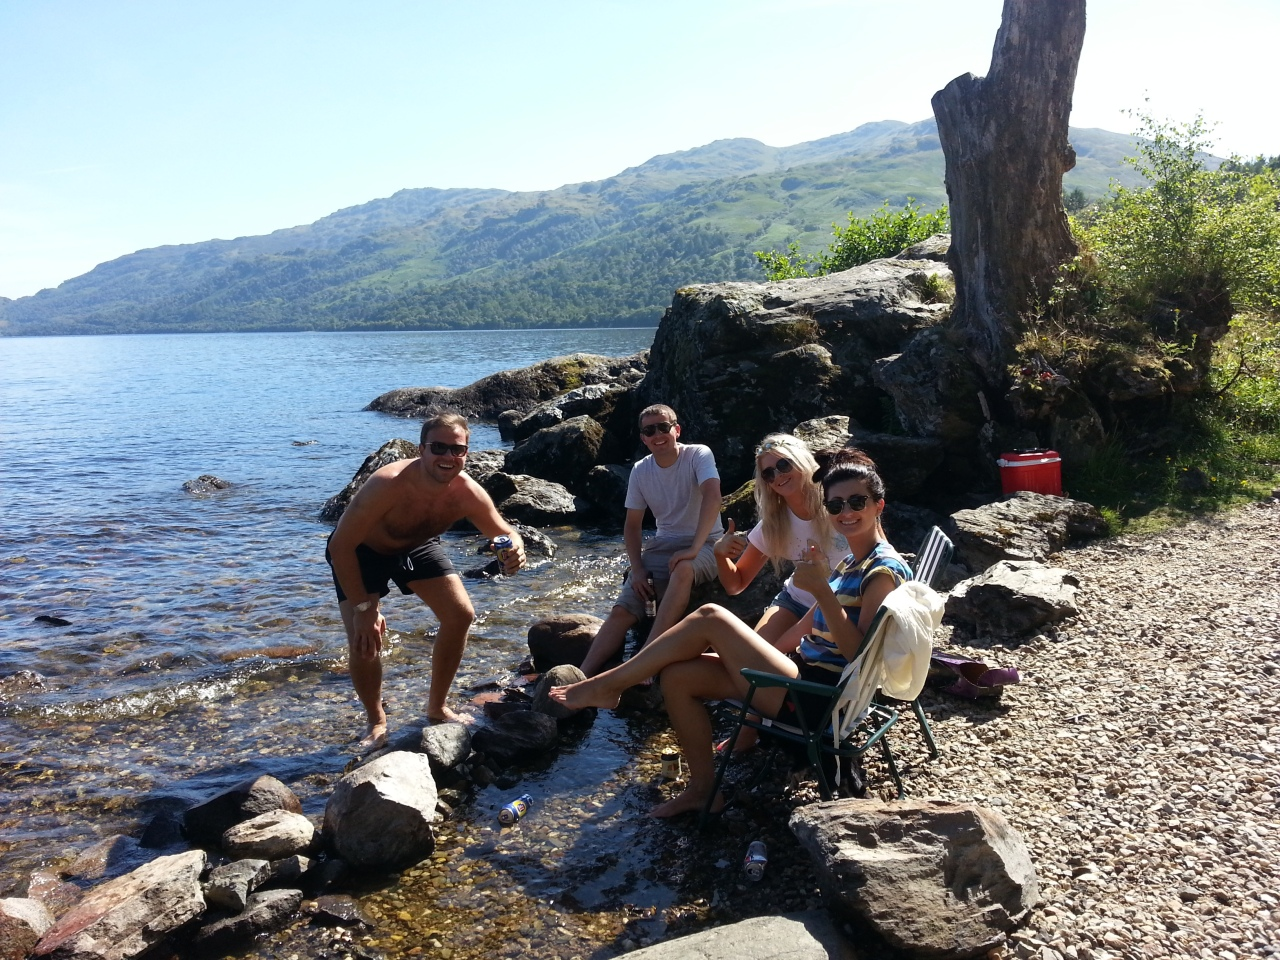 The guys I met at Loch Lomond camping by the water and enjoying the summer of 2013.